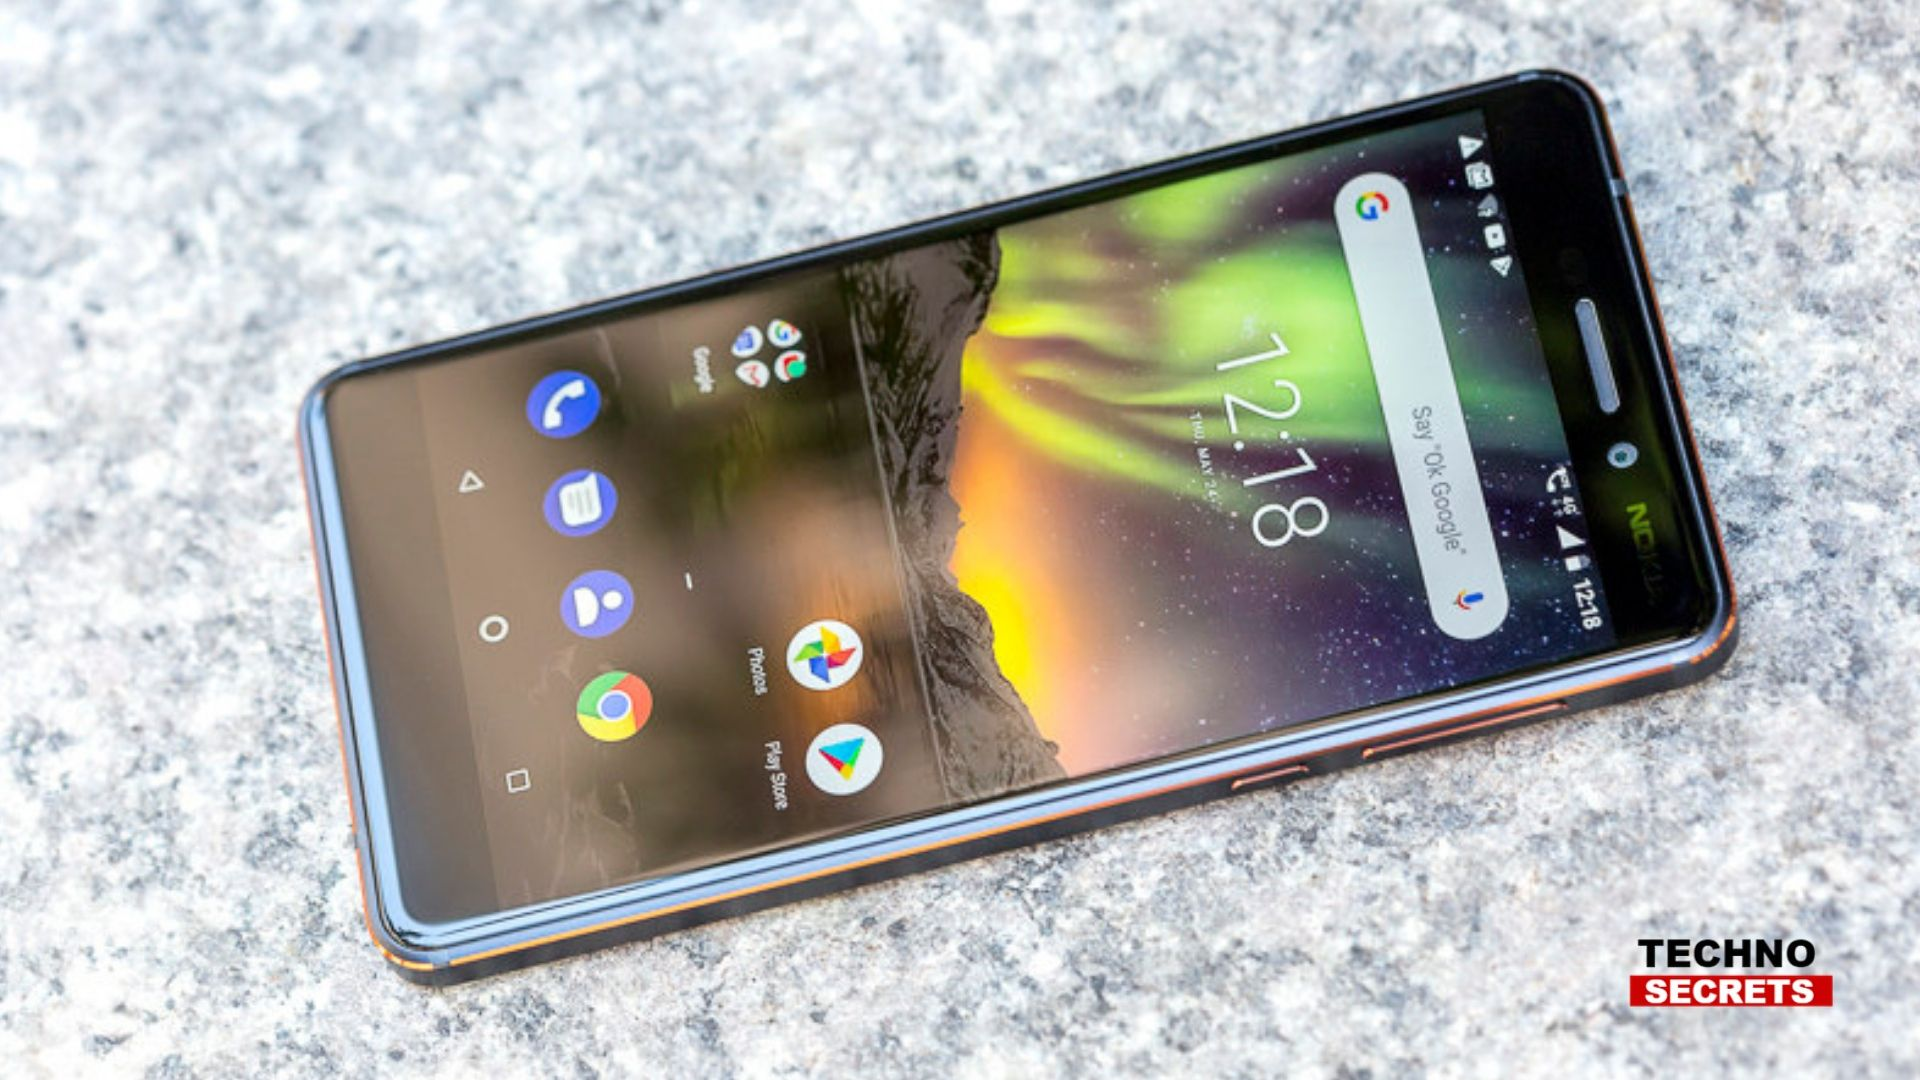 Nokia 6.1 Gets a Price Cut in India